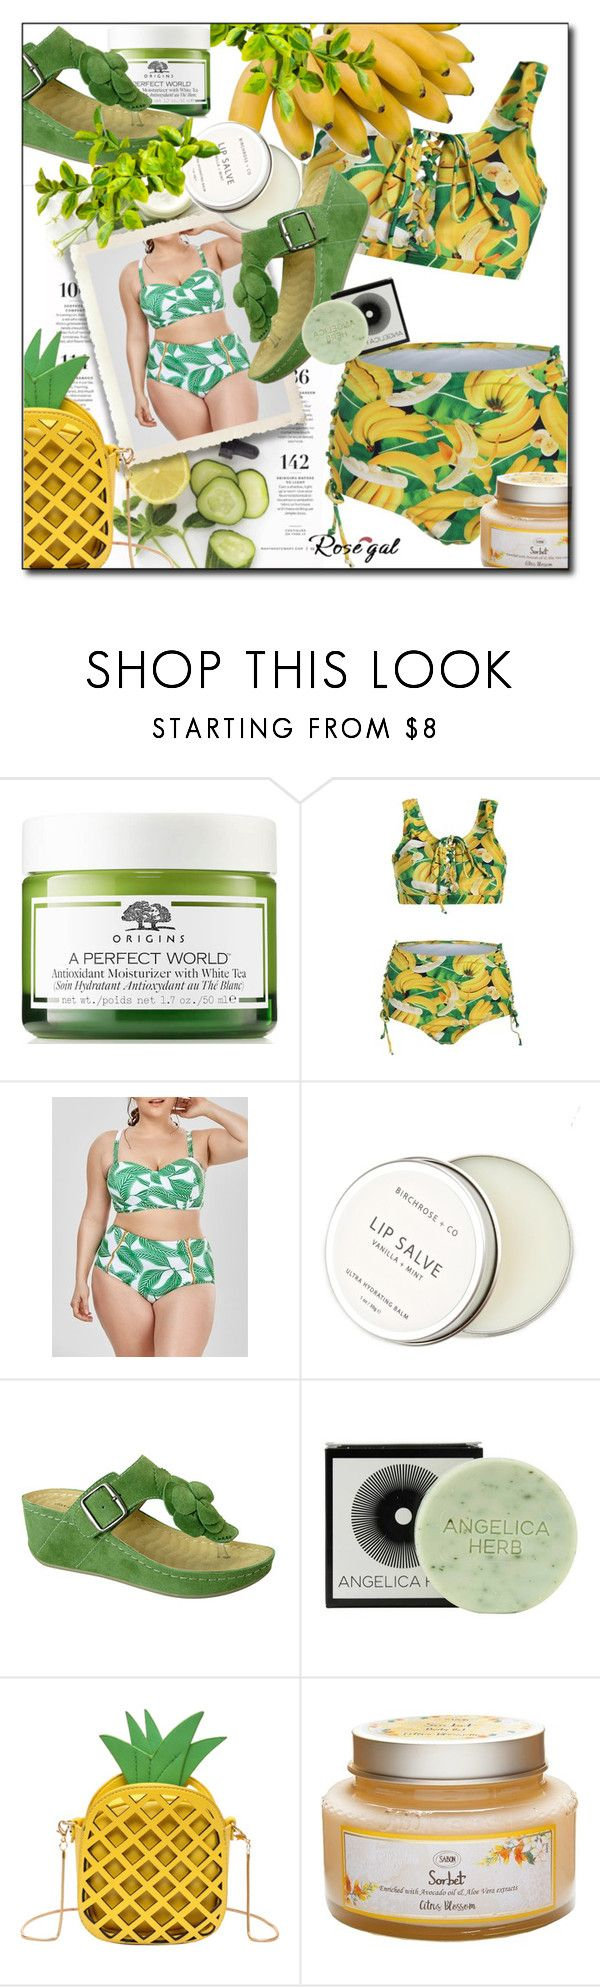 """Plus size bikini"" by pal-0 ❤ liked on Polyvore featuring Martha Stewart, Birchrose + Co., David Tate and Jayson Home"